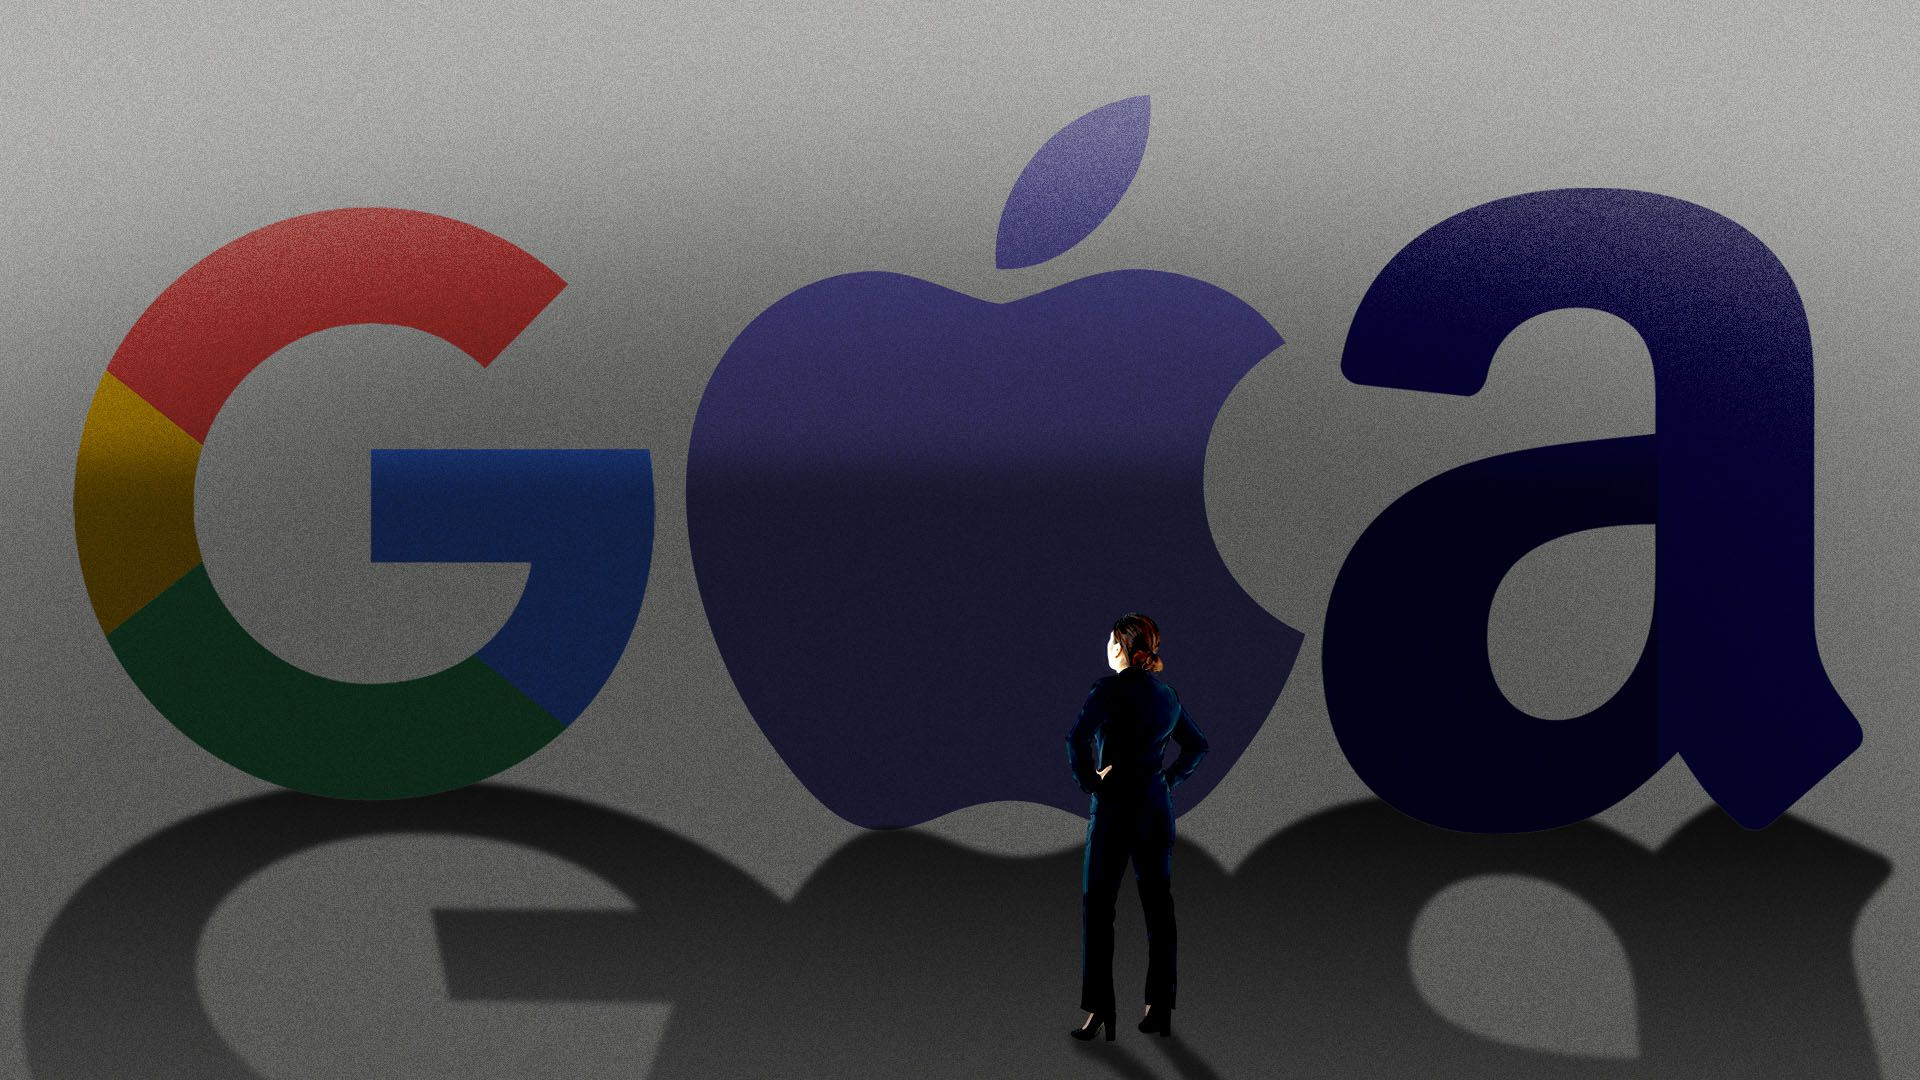 Small tech firms with Big Tech gripes